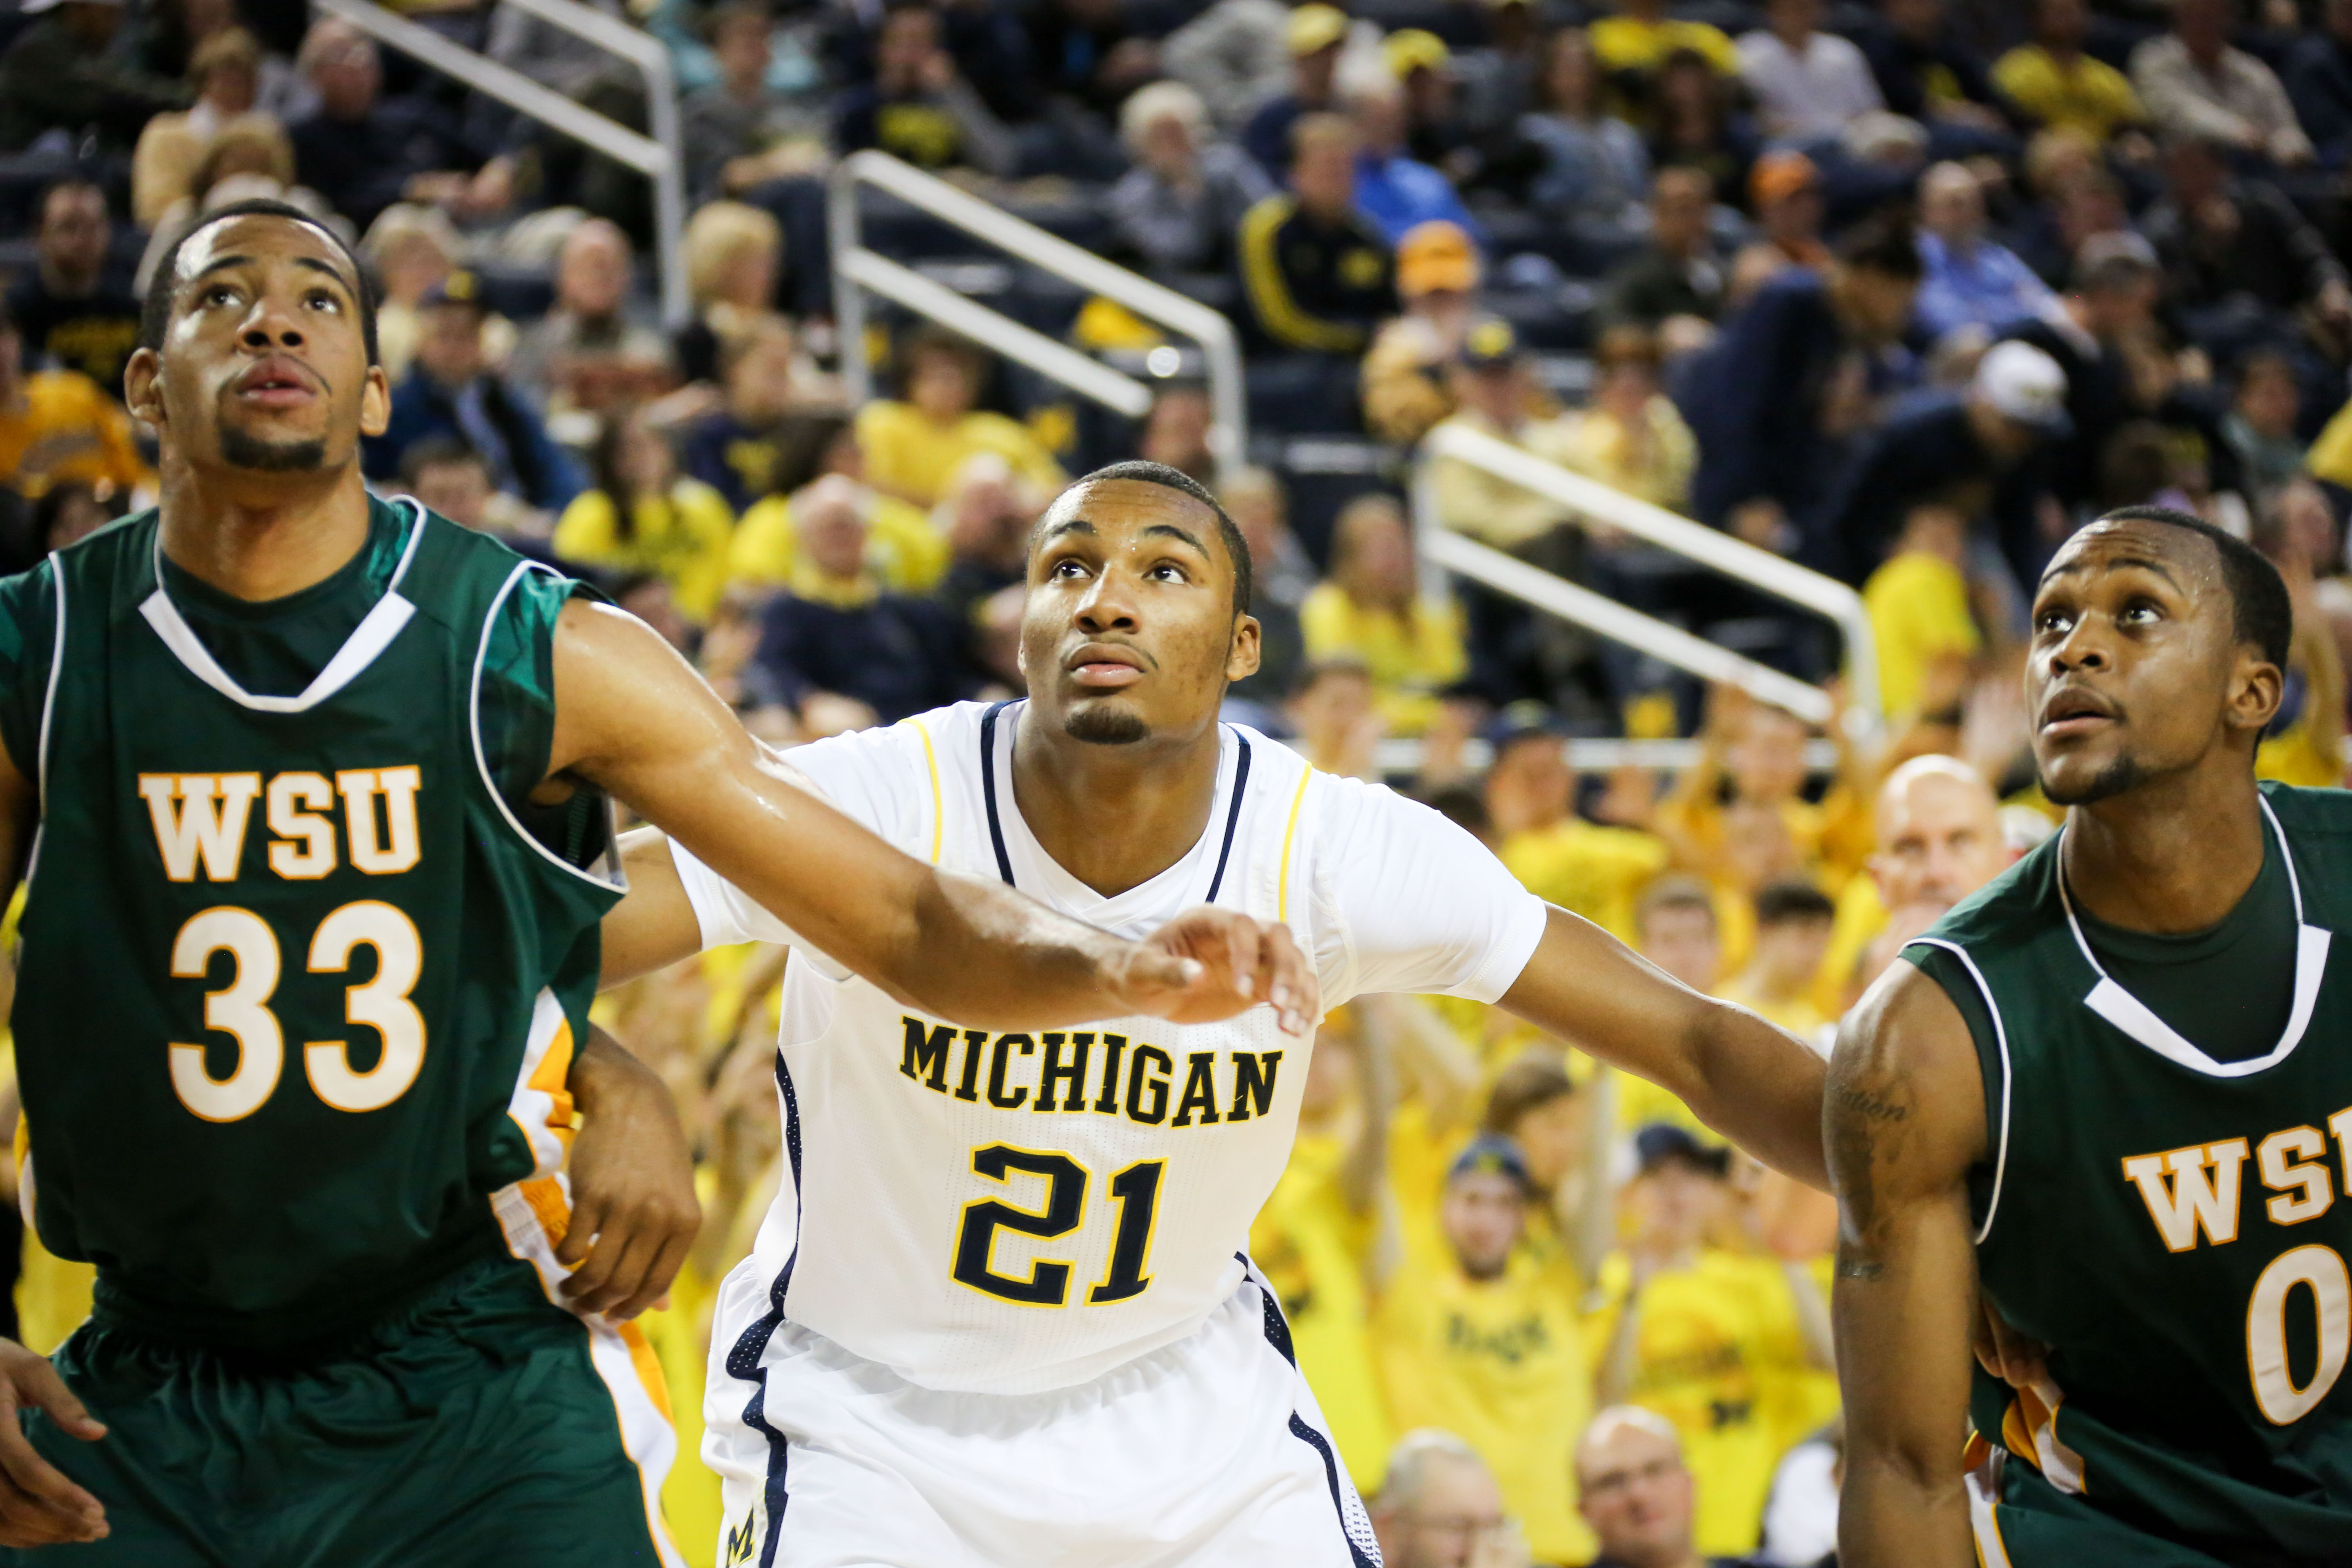 Michigan 79, Wayne State 60-21